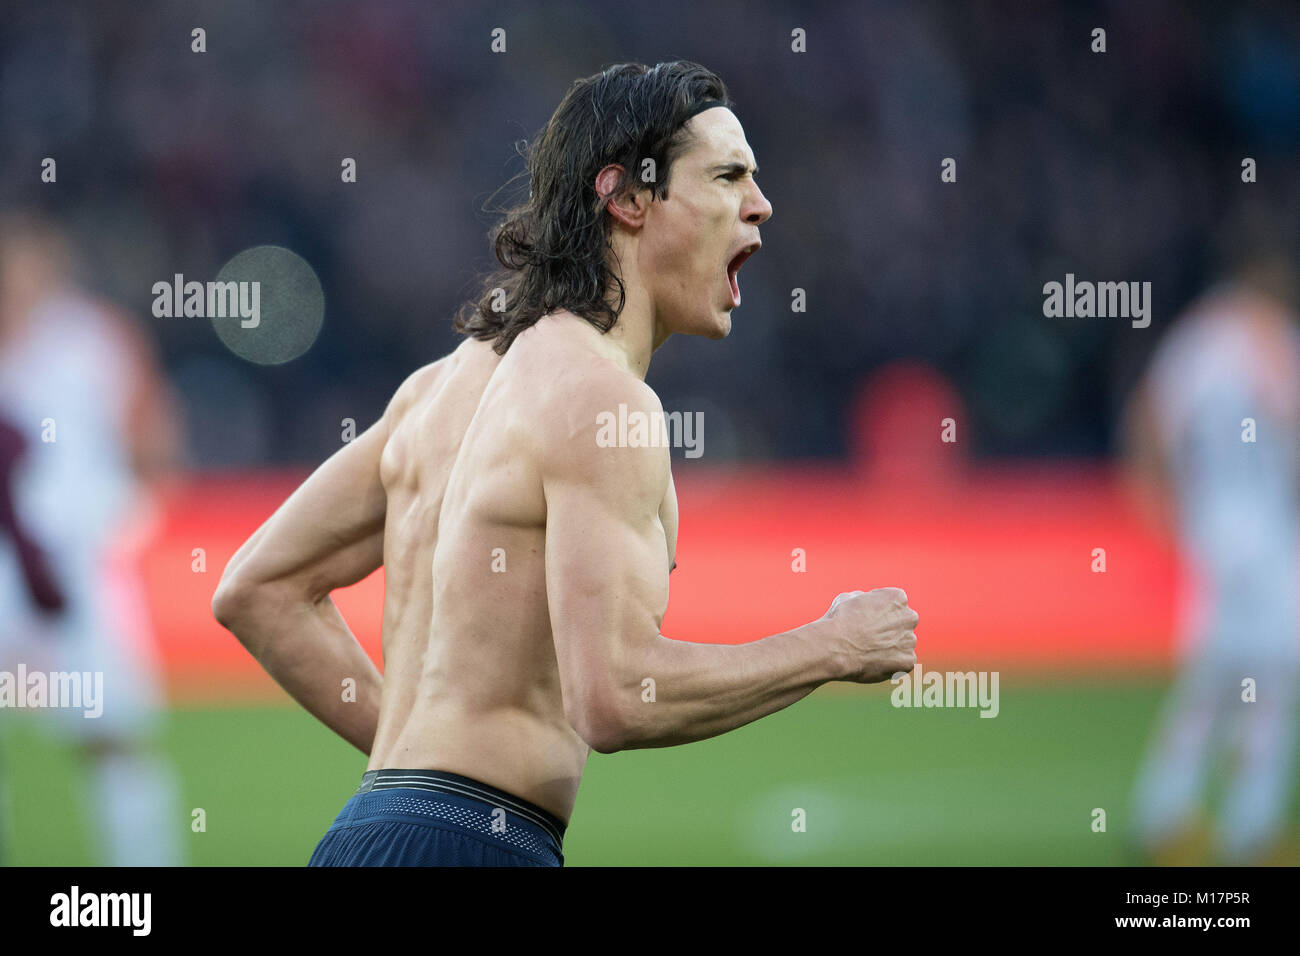 Edinson Cavani High Resolution Stock Photography And Images Alamy